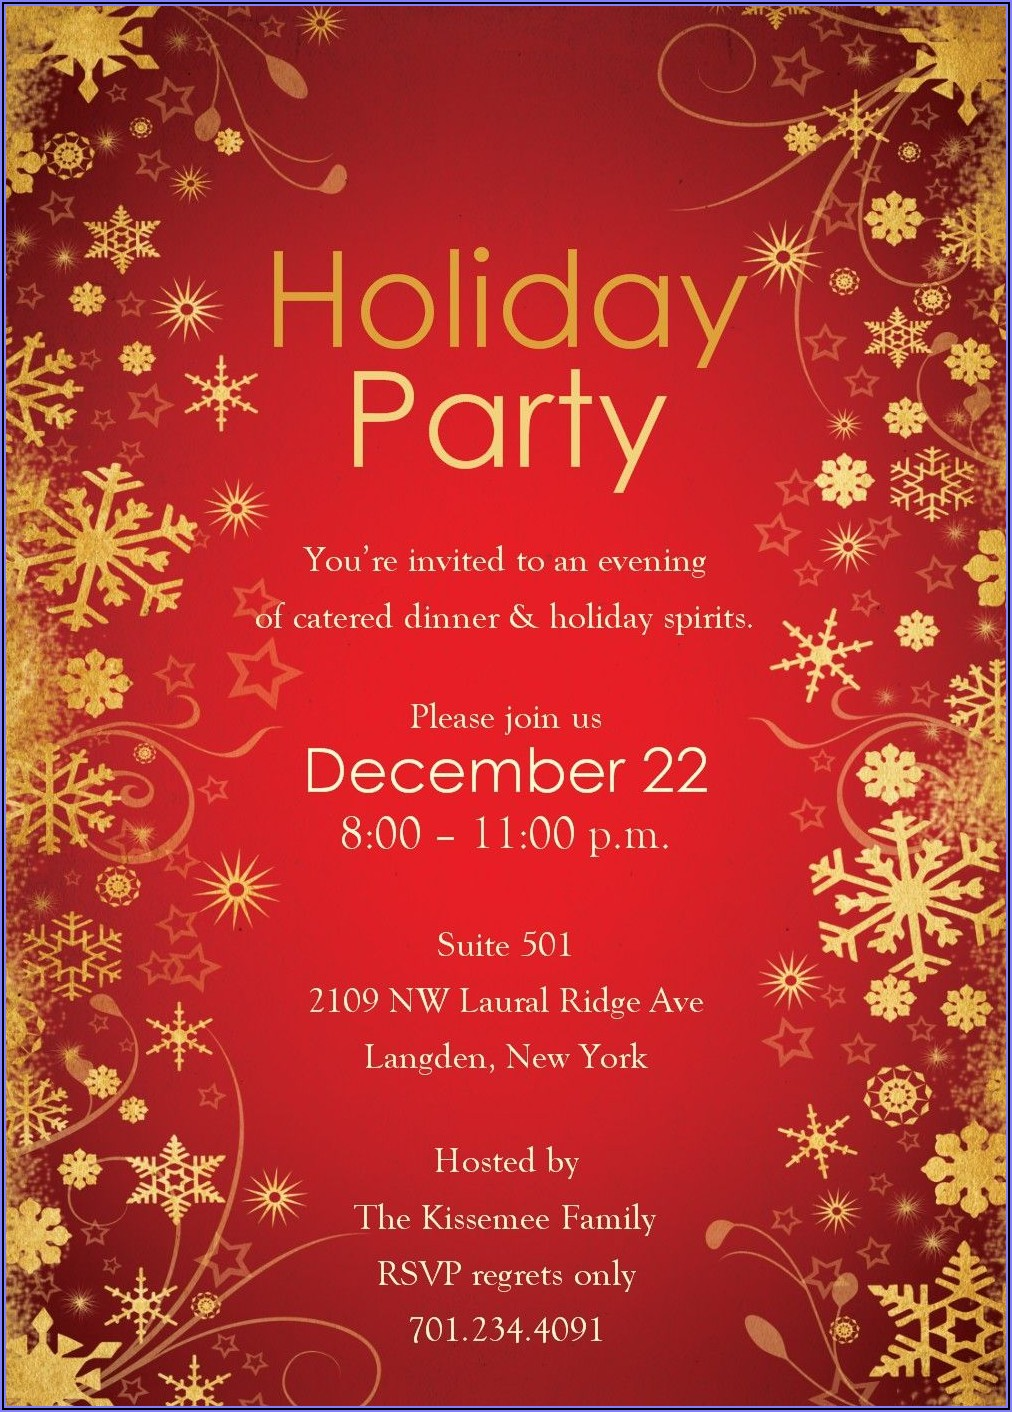 Work Christmas Party Invitations Free Templates